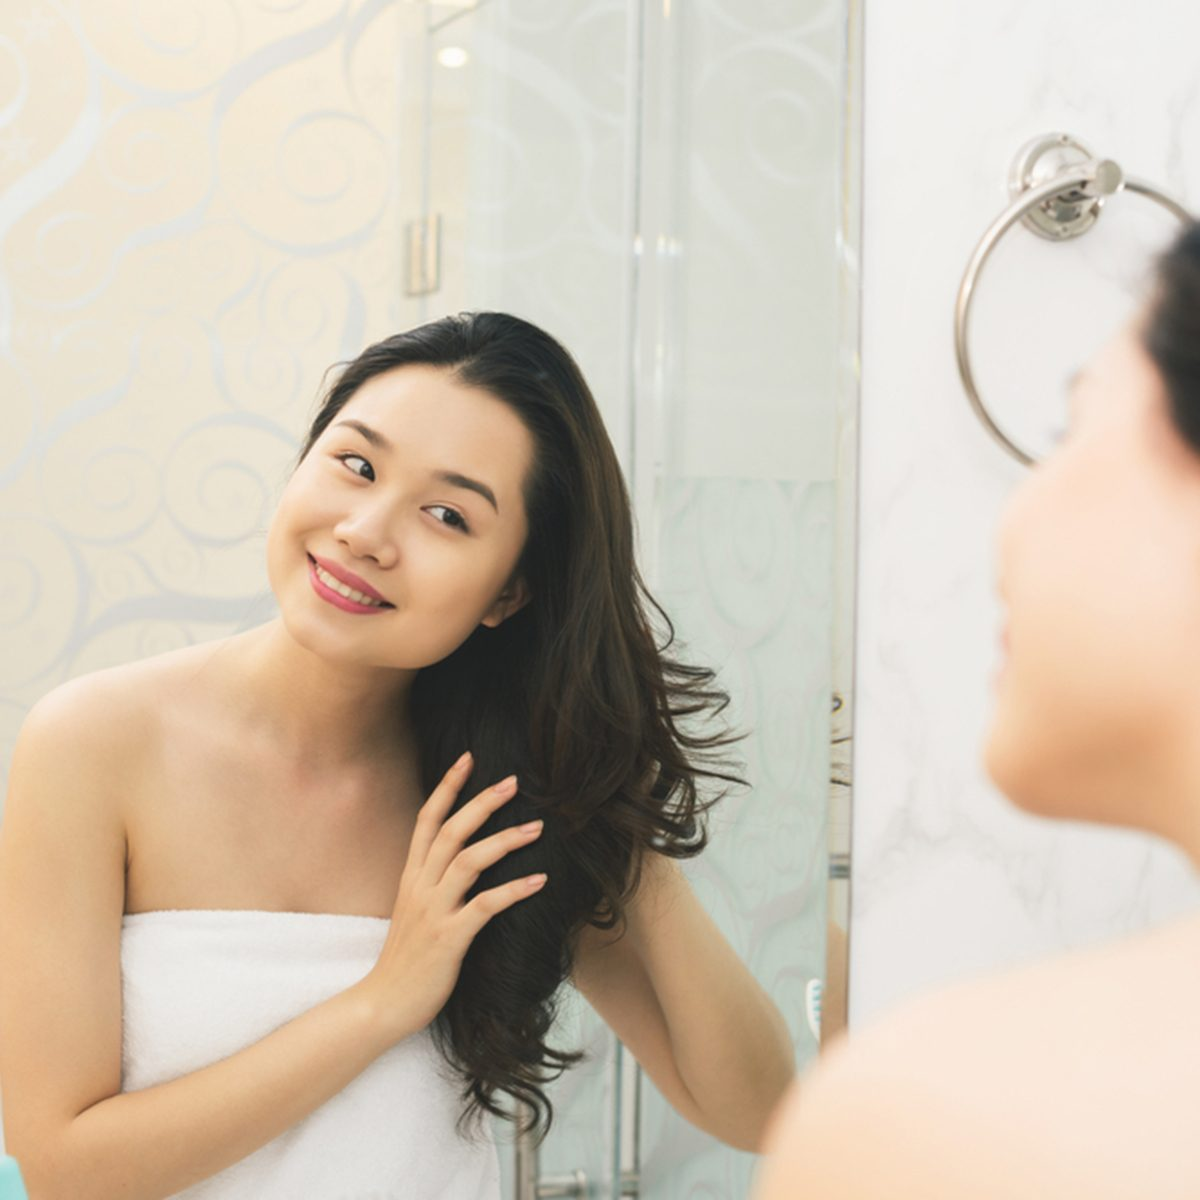 Portrait of attractive woman brushing hair in bathroom